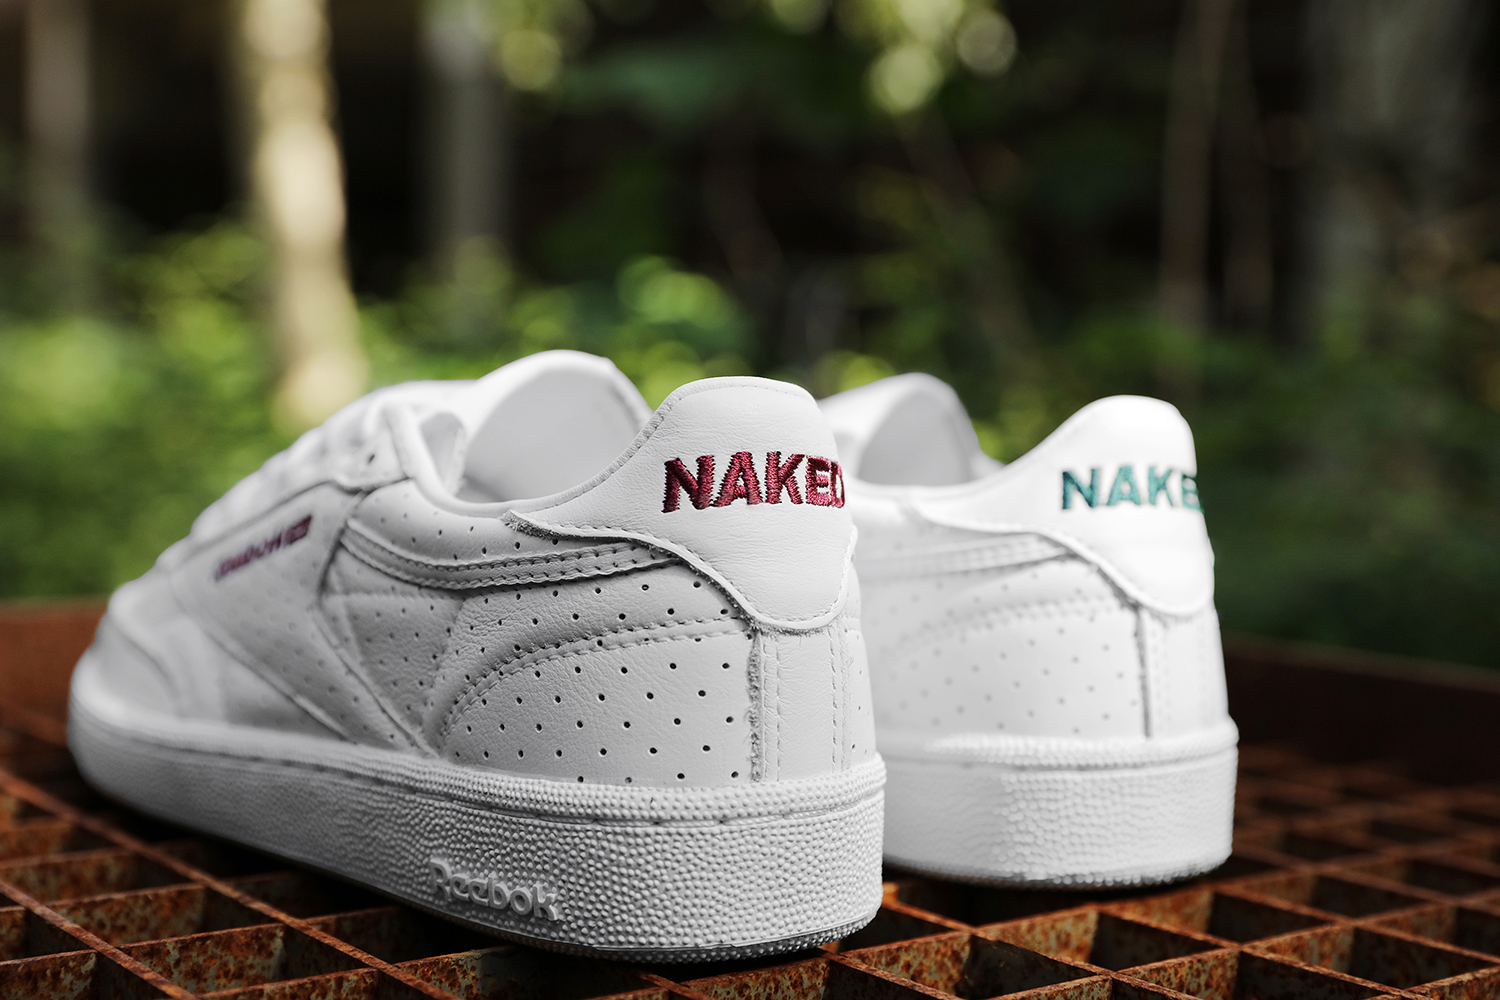 500395dce273 Naked x Reebok Summer 2016 Collection